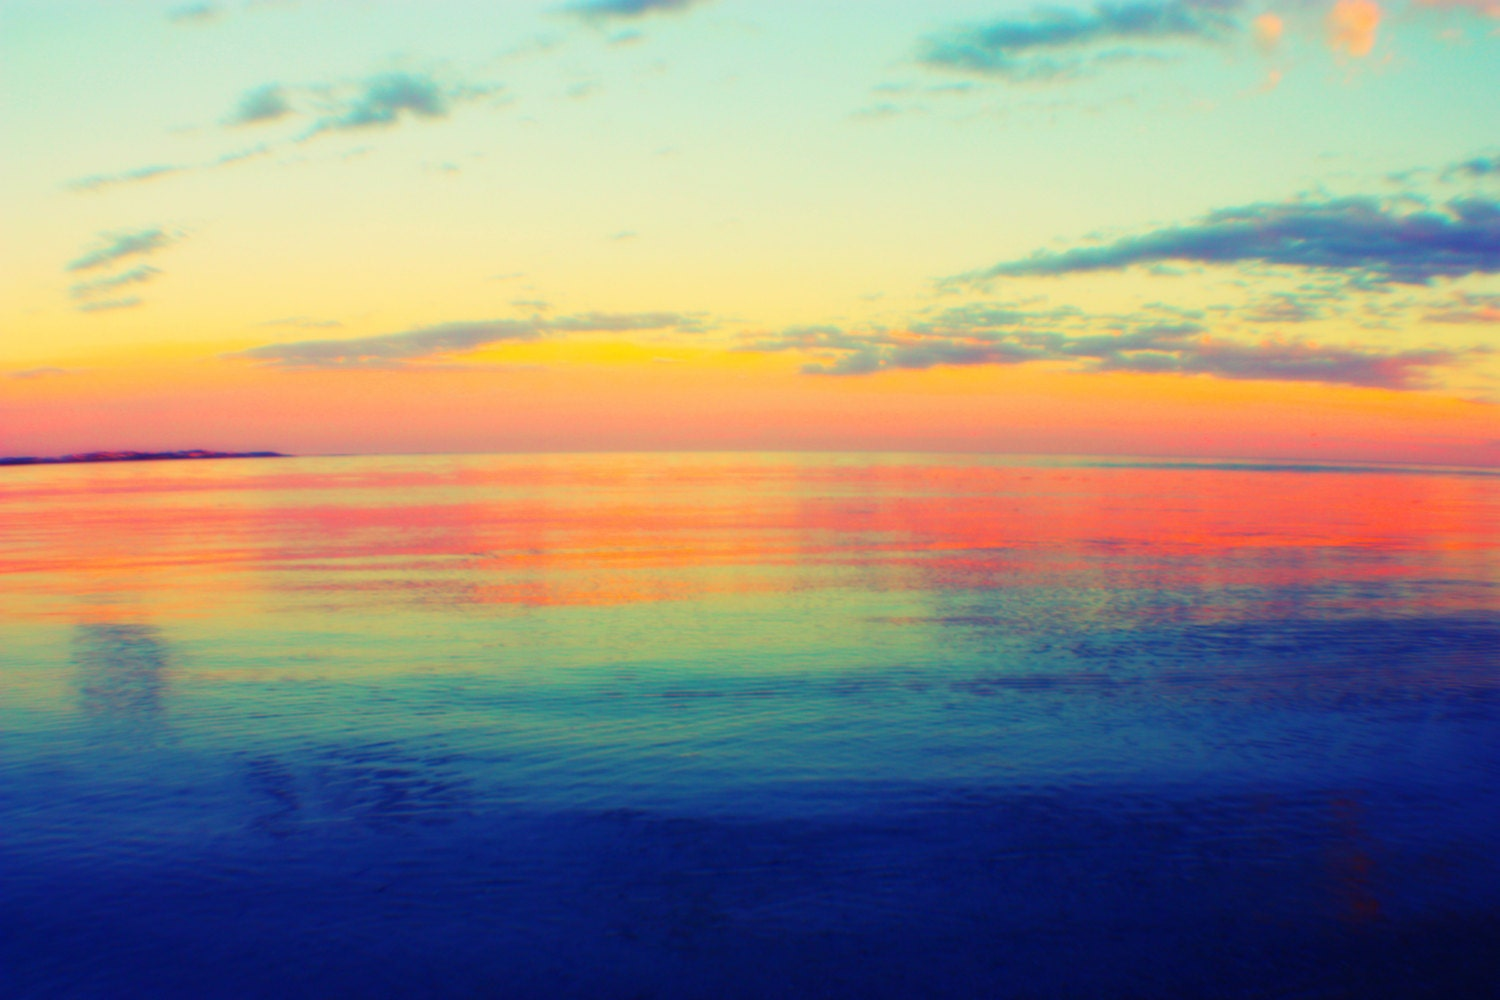 Sunset reflections victor harbor australia home decor wall art fine art photography Home decor wall decor australia